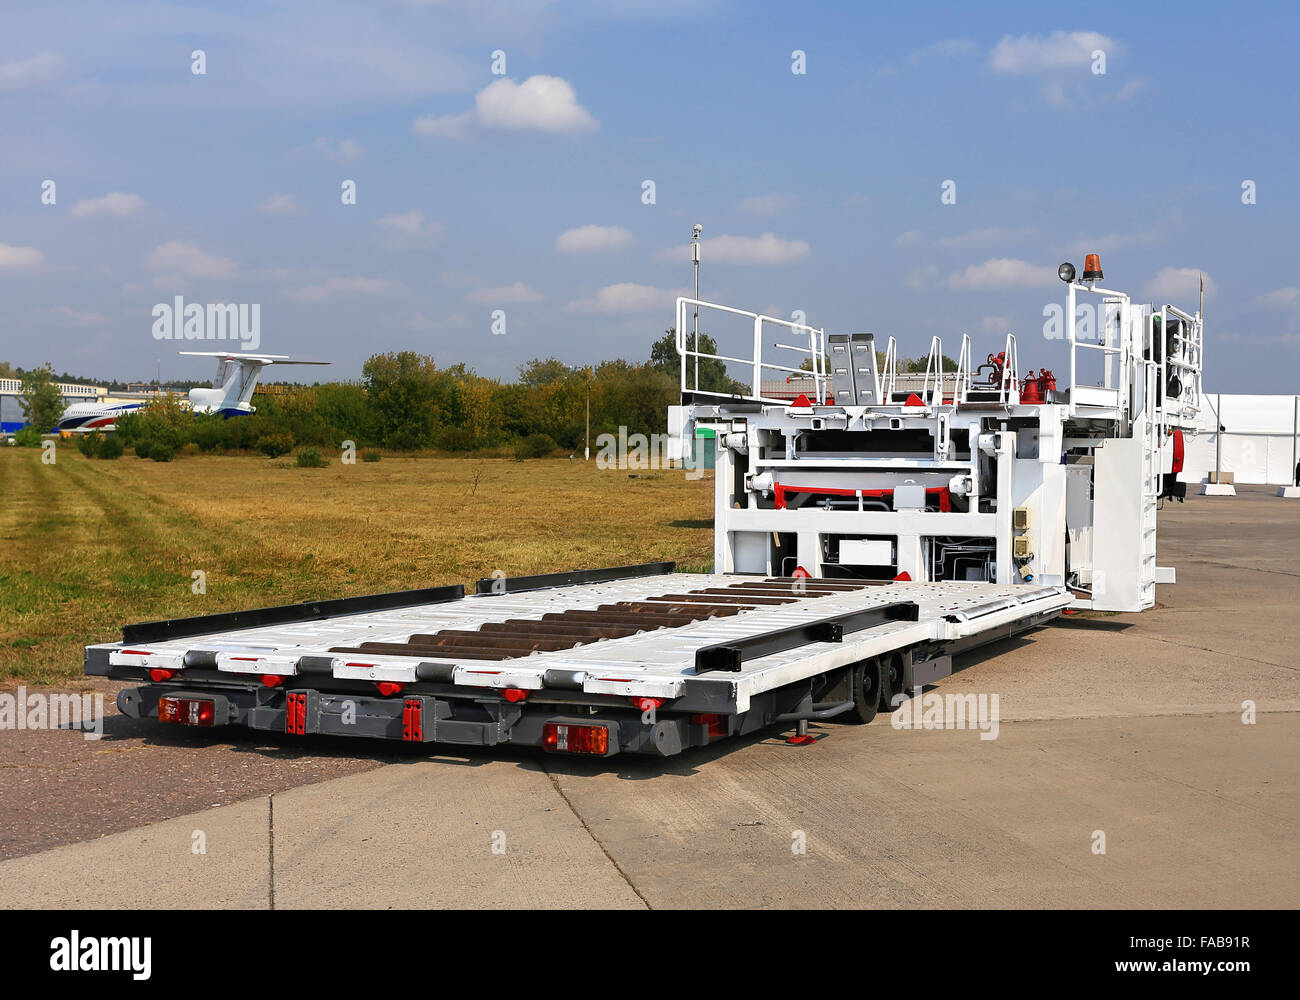 Airfield self-propelled platform for loading and unloading of aircraft - Stock Image